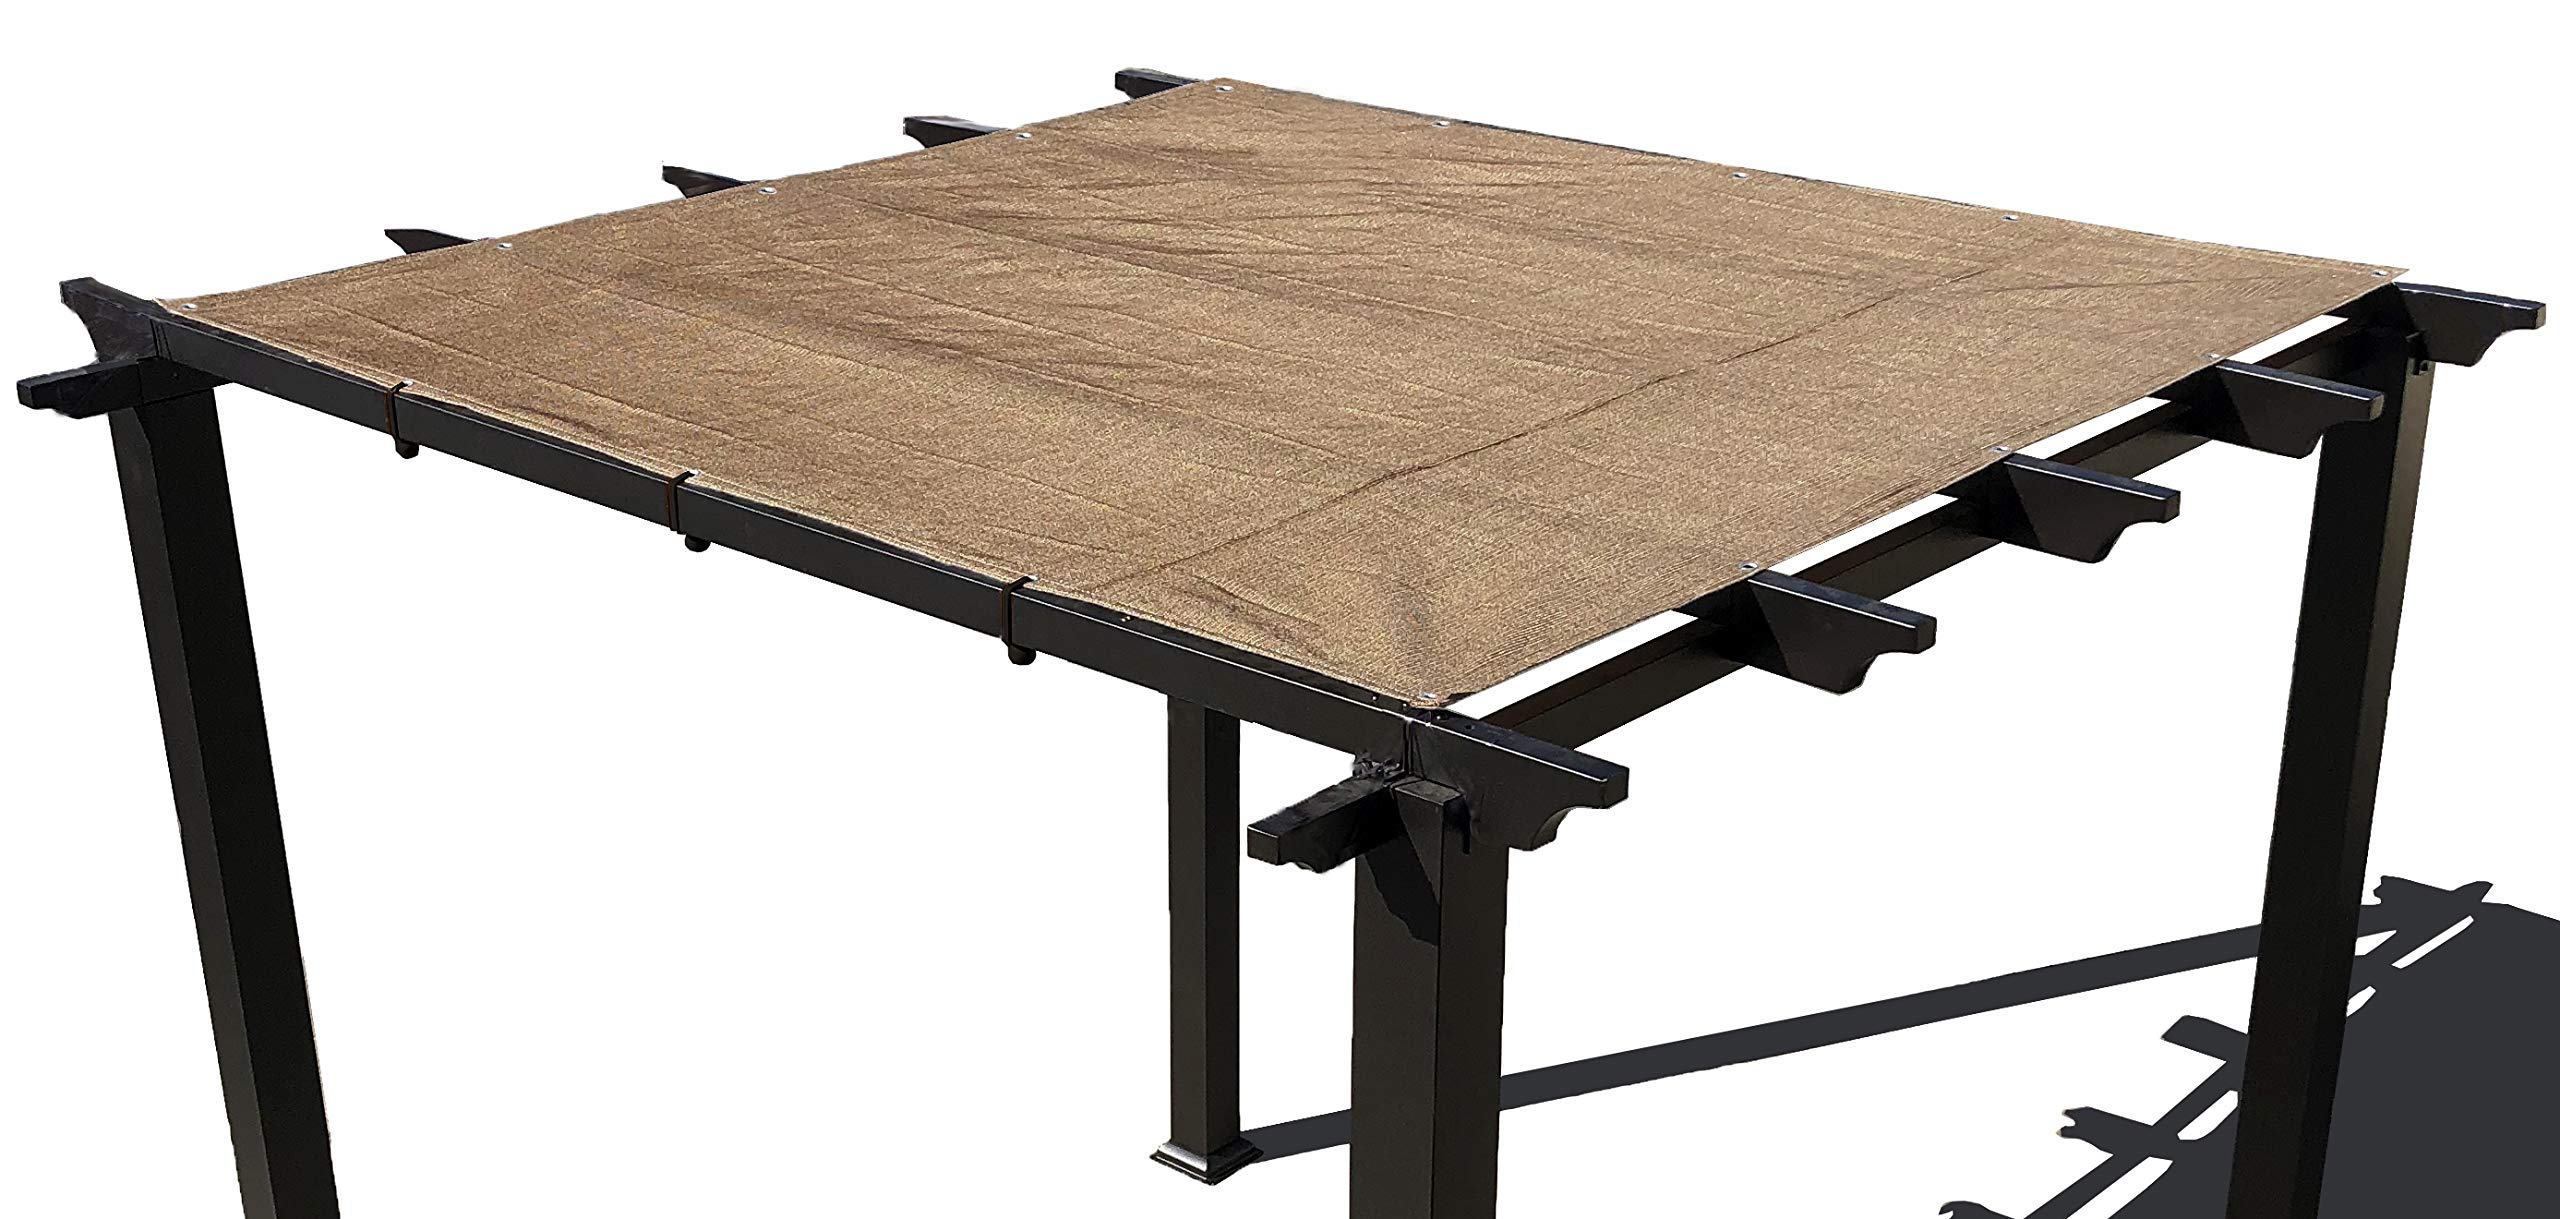 Alion Home Pergola Shade Cover Sunblock Patio Canopy HDPE Permeable Cloth with Grommets (8' x 12', Walnut) by Alion Home